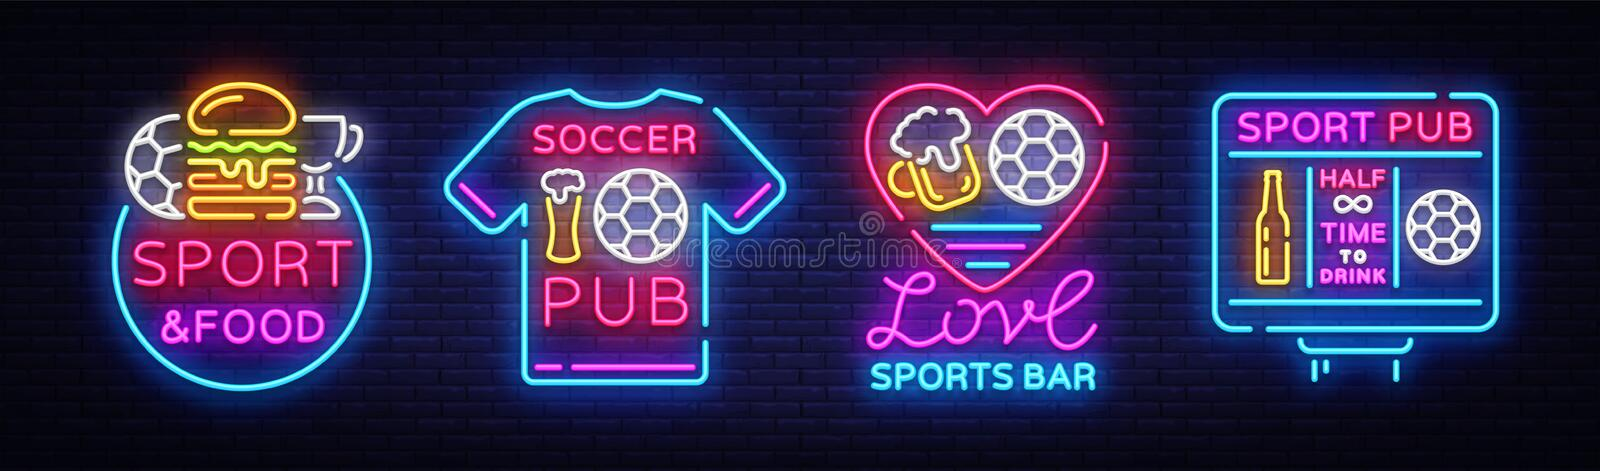 Sports bar collection logos neon vector. Sports pub set neon signs, Football and Soccer concepts, night bright signboard. For sports pub bar, fan club, dining vector illustration